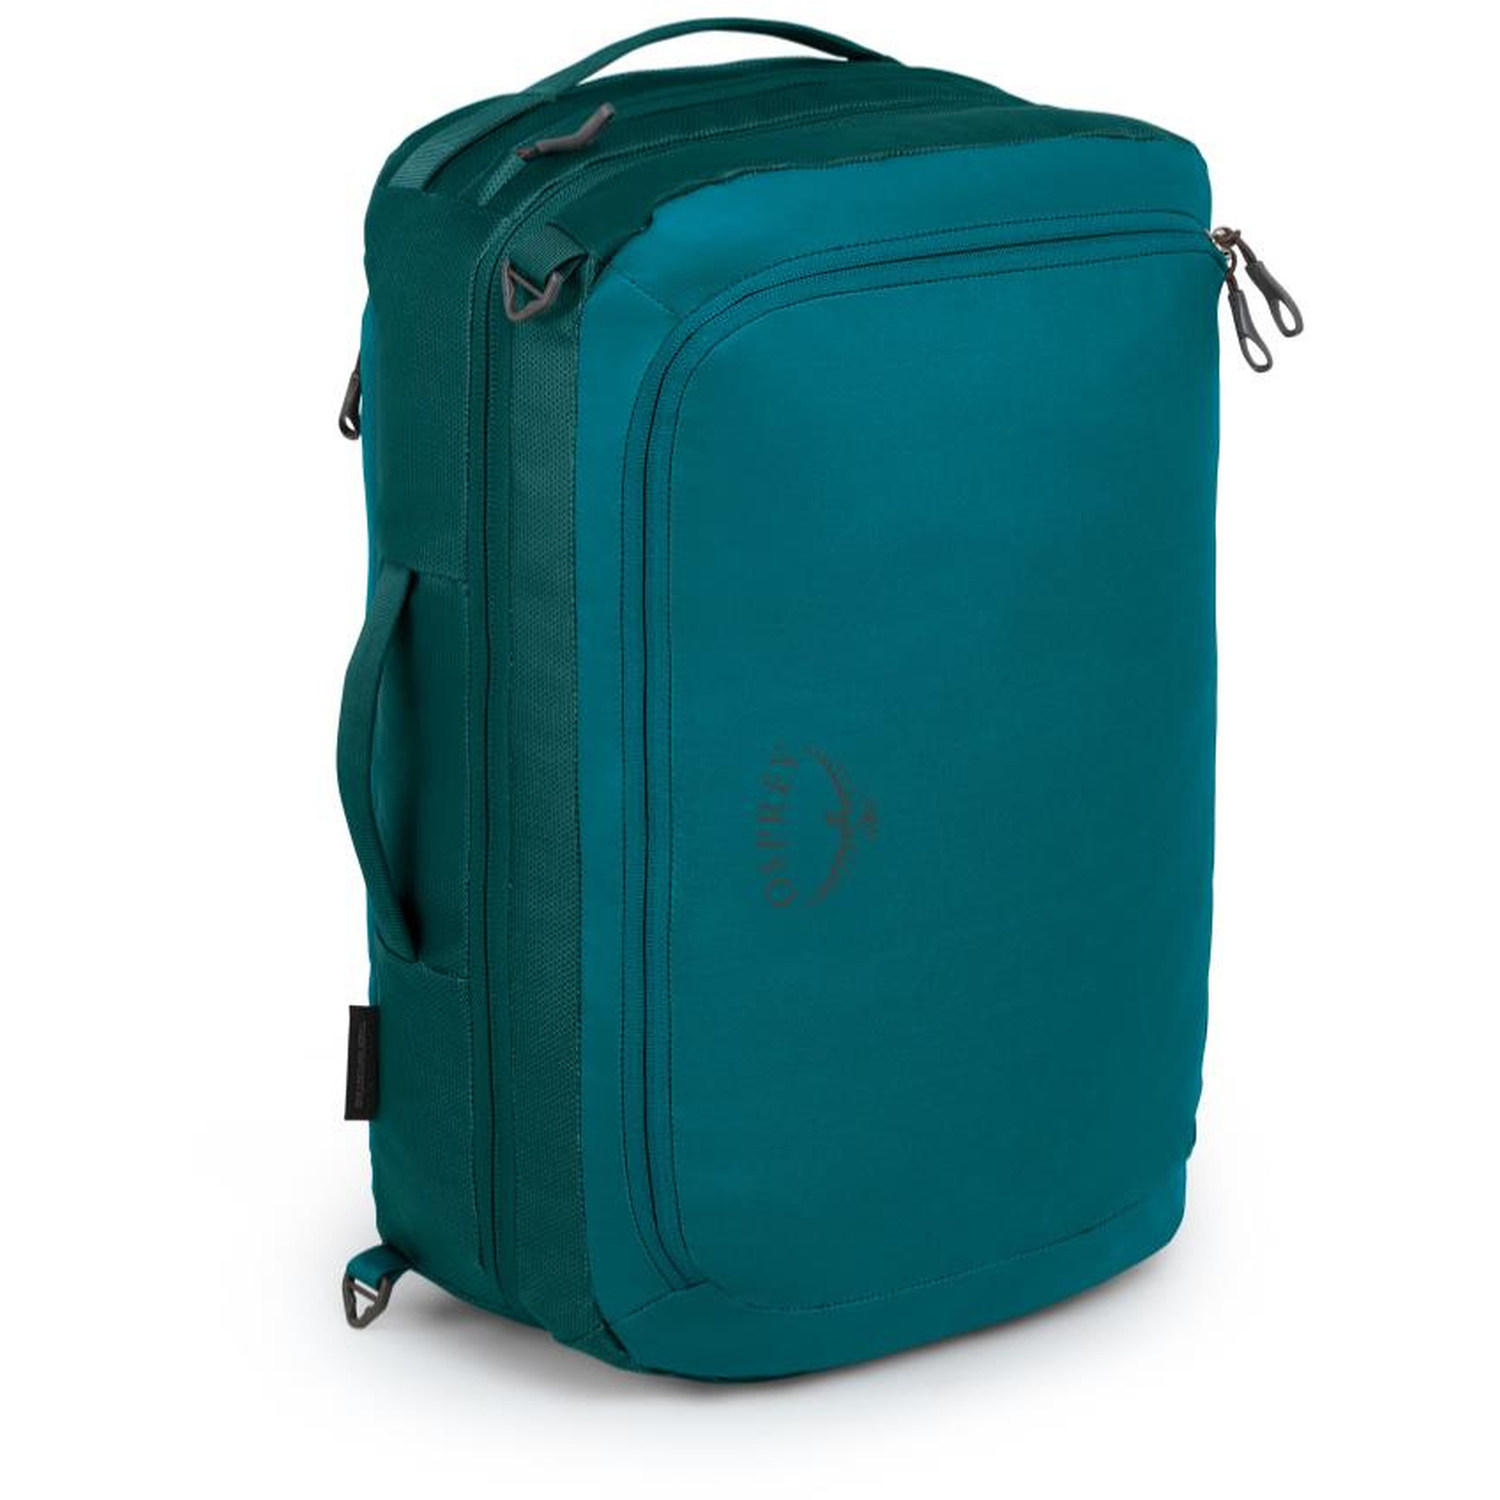 Osprey Transporter Global Carry-On 36 Reisetasche türkis,westwind teal von Osprey